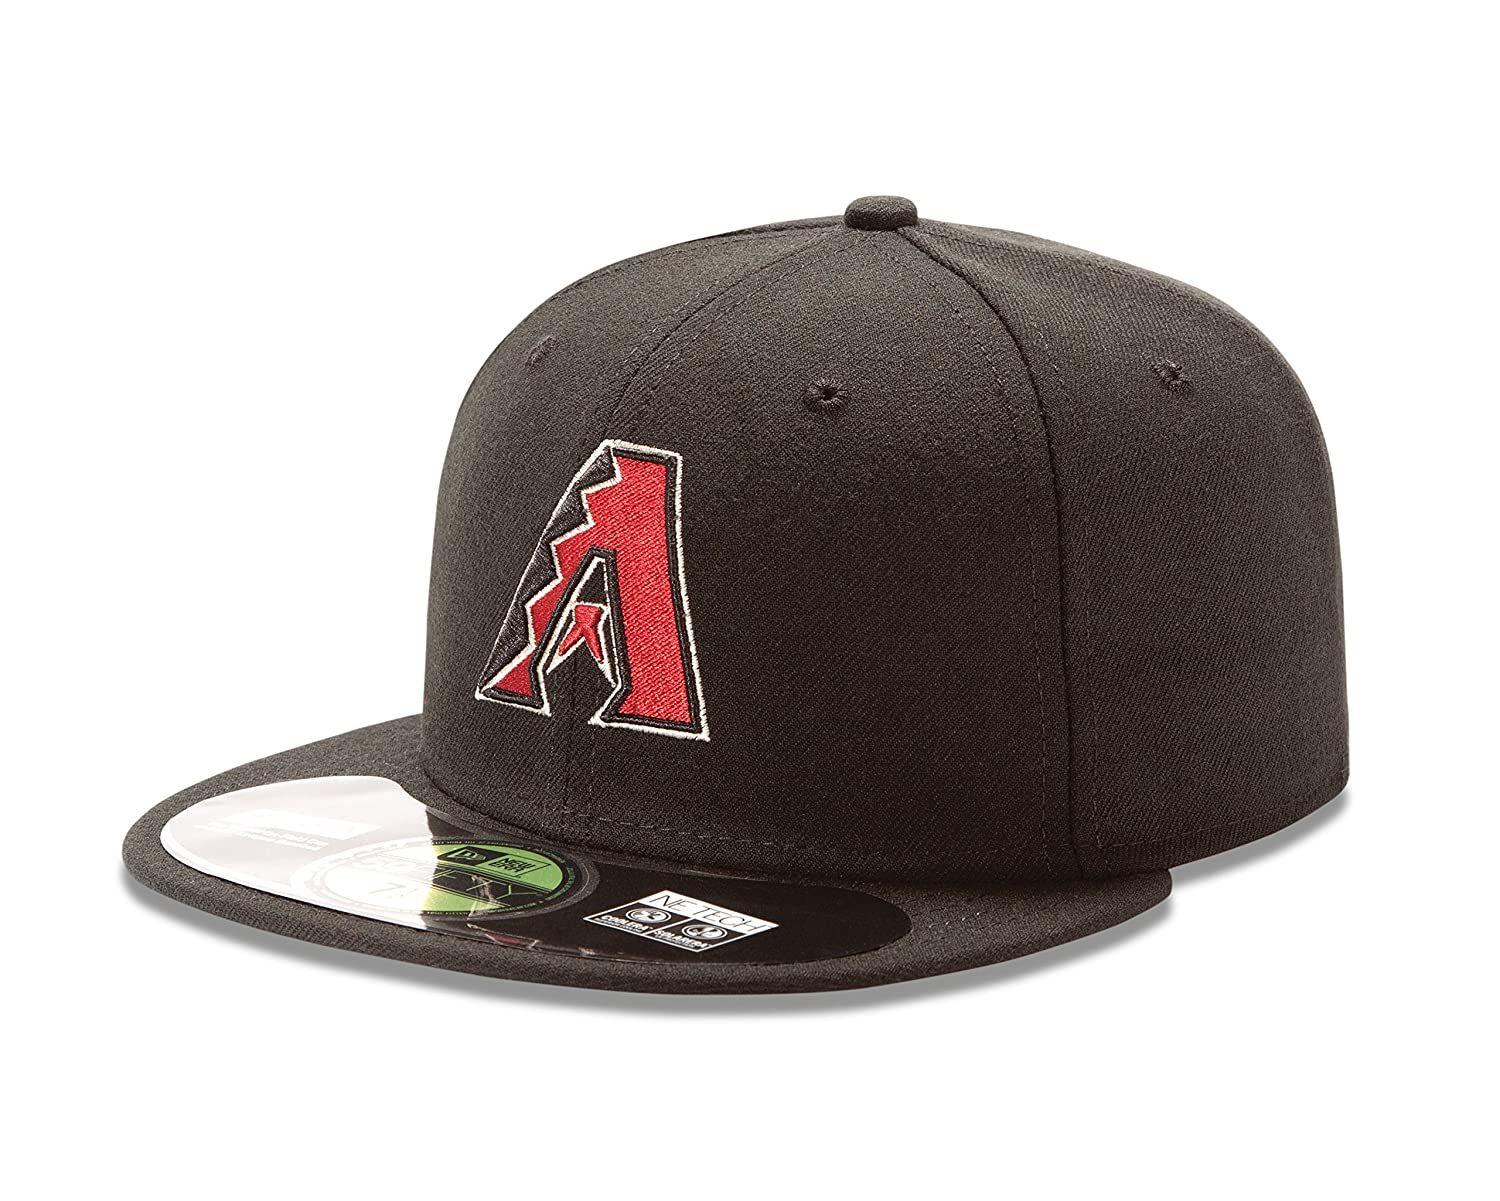 57b302b45c5 Amazon.com   New Era MLB Game Authentic Collection On Field 59FIFTY Fitted  Cap   Sports   Outdoors